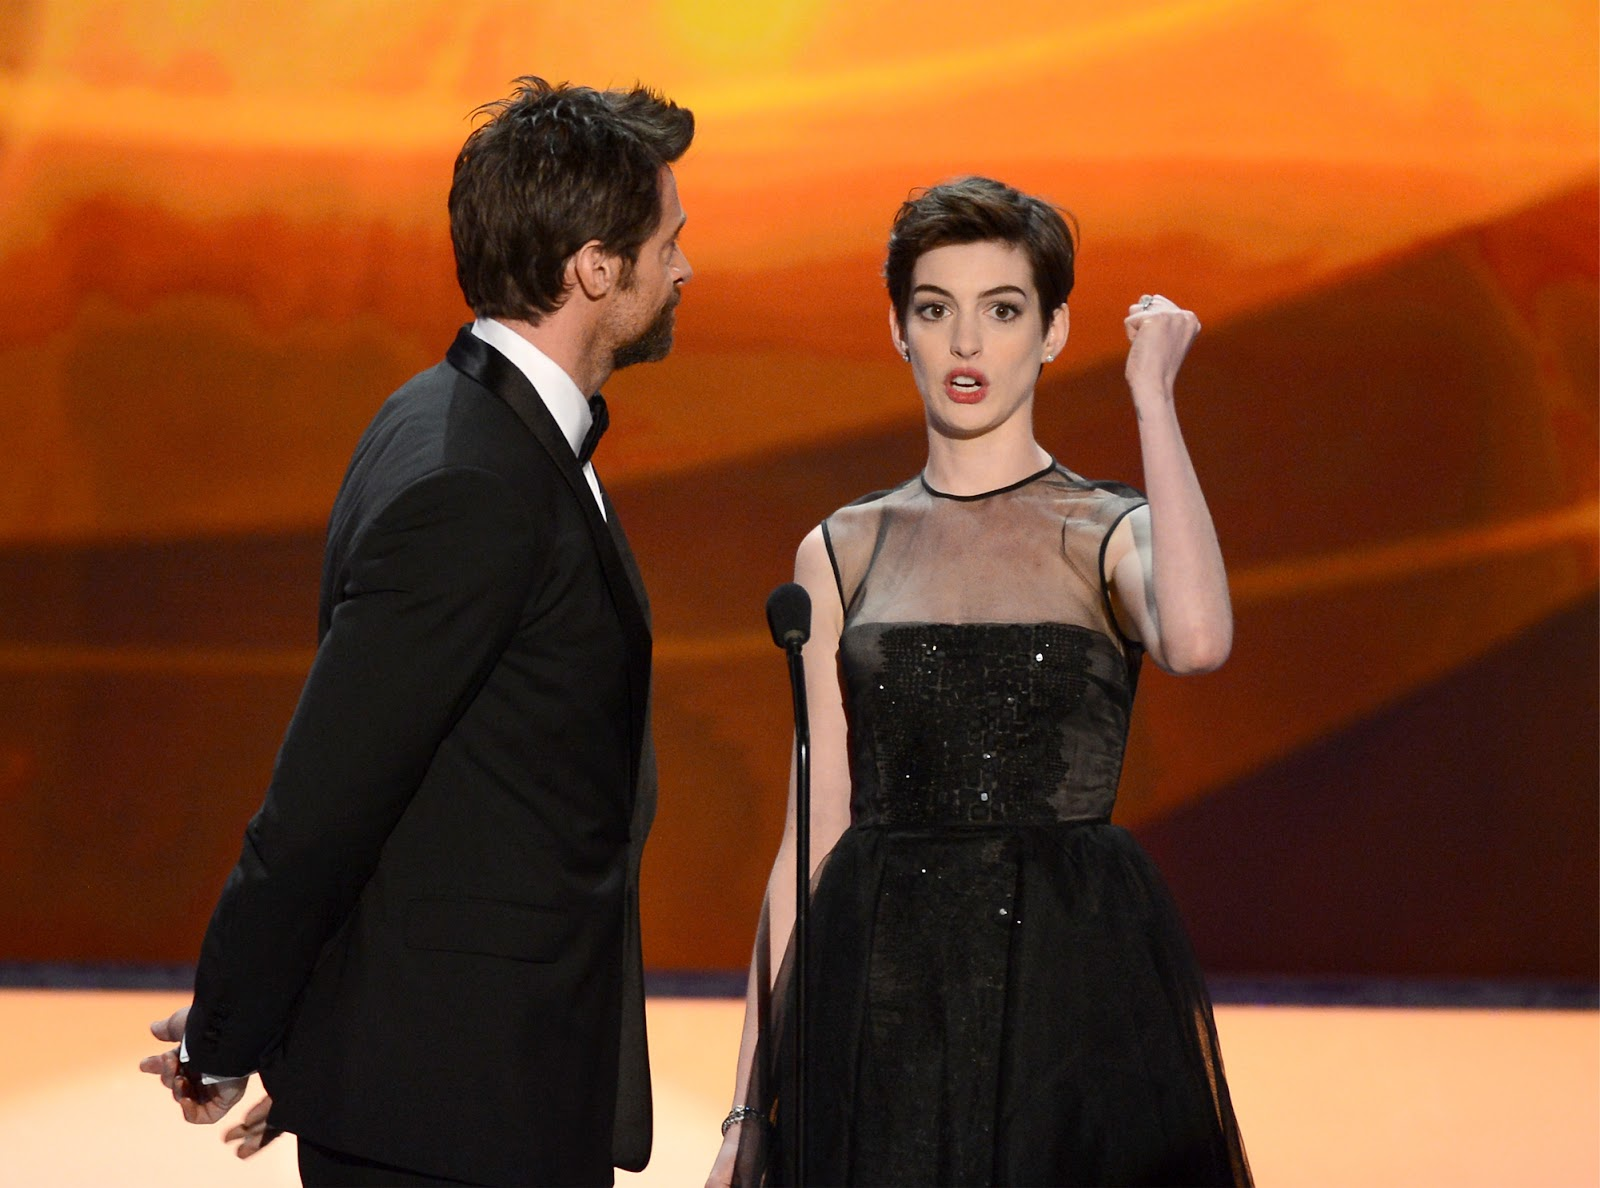 http://3.bp.blogspot.com/-k_ckKGXRBOQ/UQZ6GTbLAaI/AAAAAAABTEw/L7B2GzFxtMQ/s1600/Anne_Hathaway-Hugh_Jackman-19th_Annual_Screen_Actors_Guild_Awards-1_27_2013-006.jpg